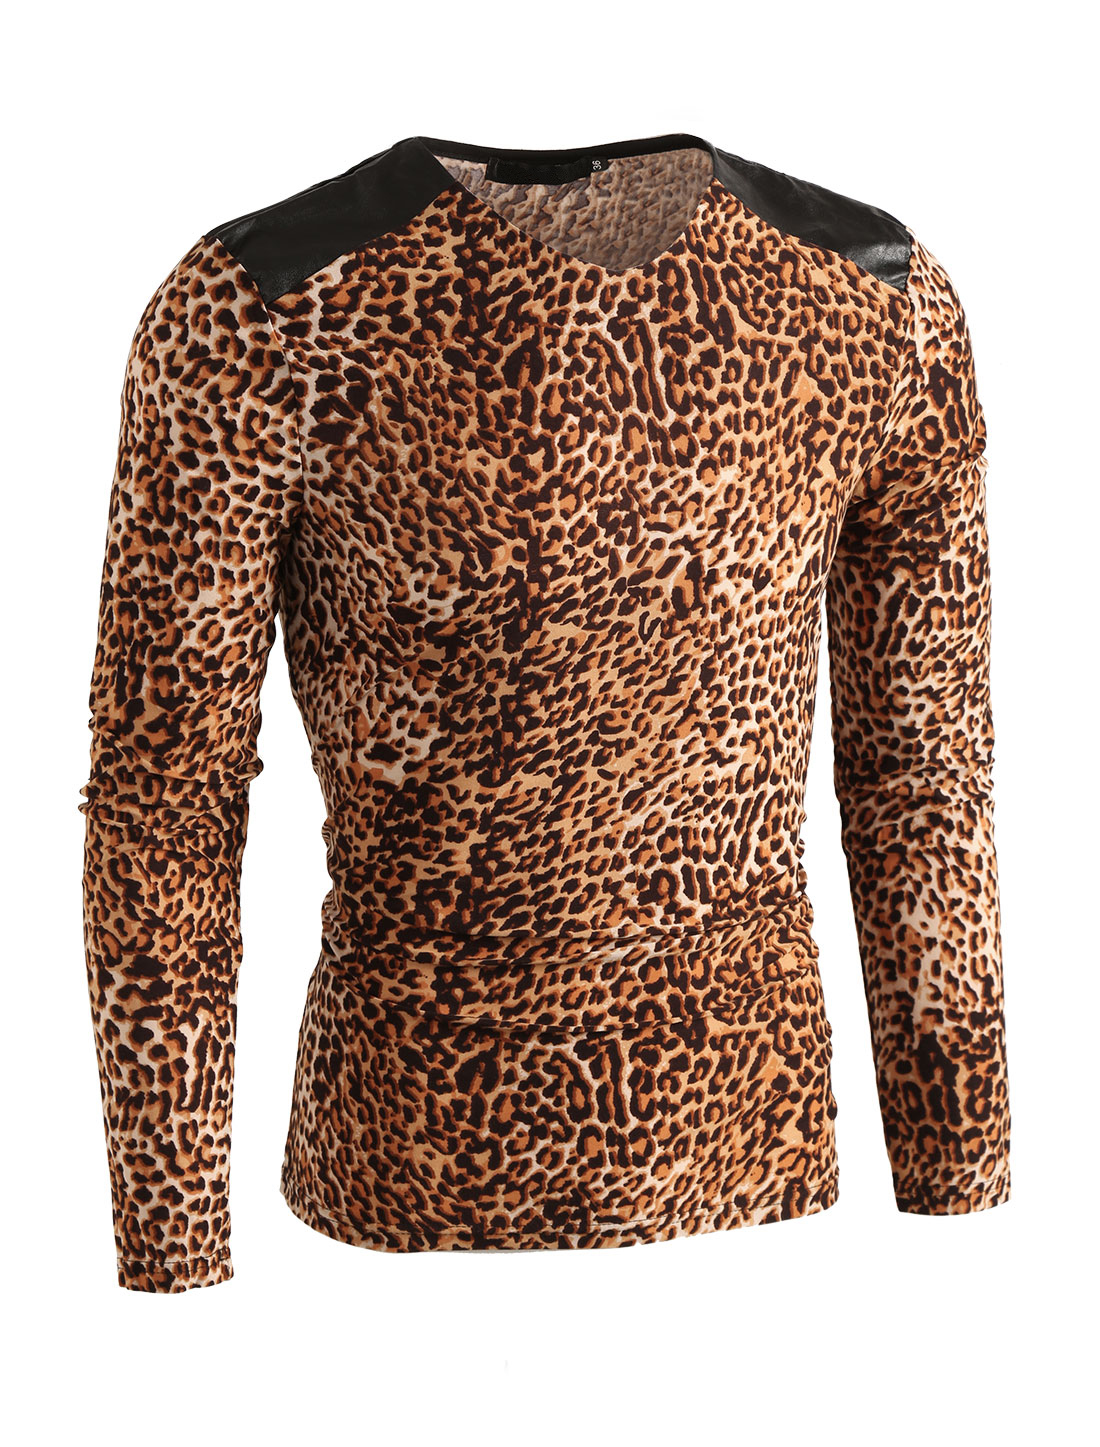 Men Beige Brown Casual V Neck Leopard Prints Fit Top Shirt L